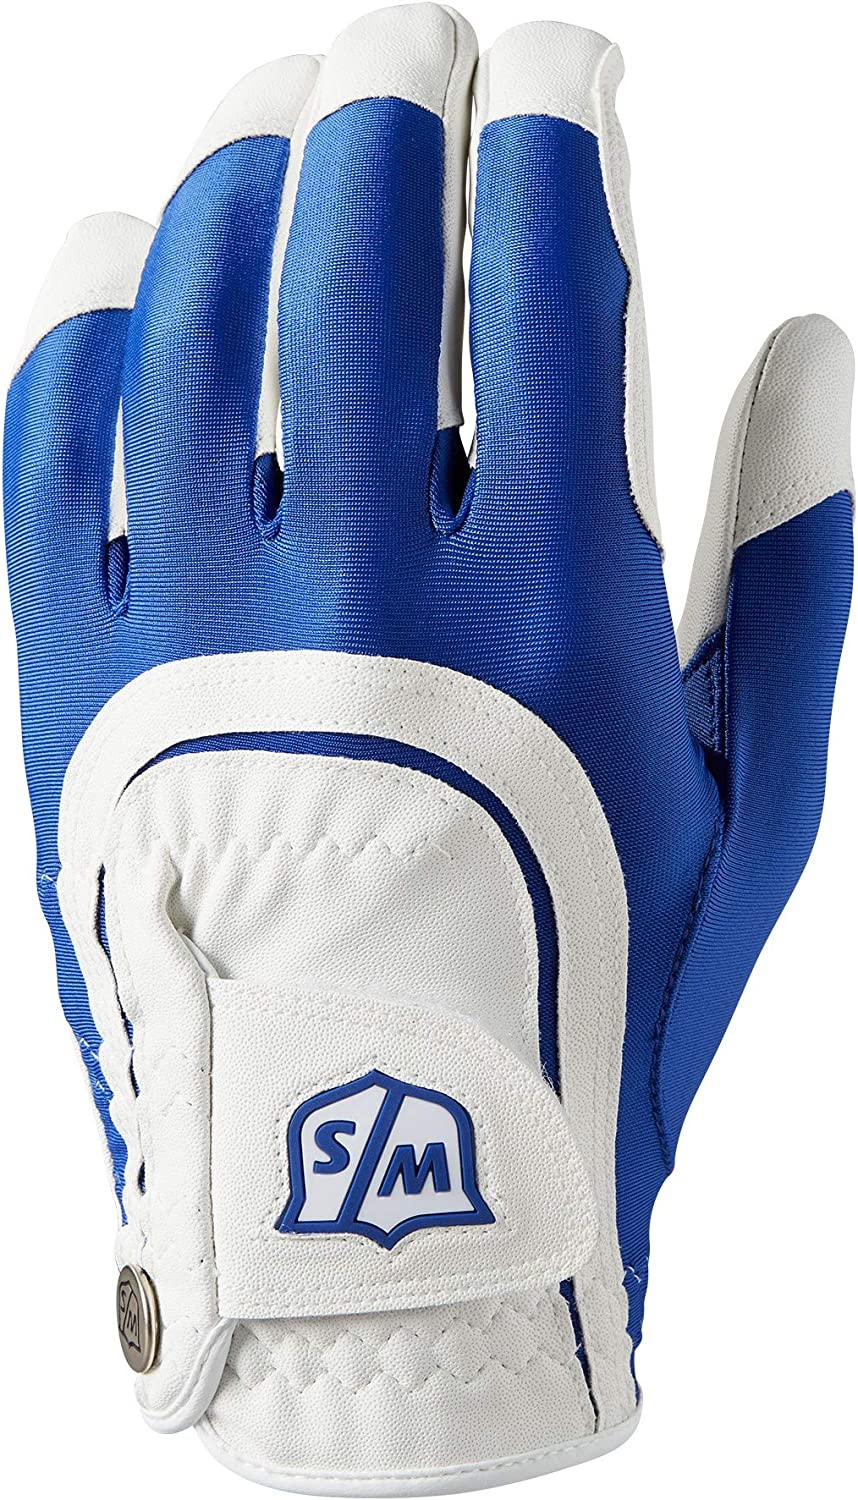 Wilson Staff Fit All Golf Glove, Men's (Worn On Left Hand)